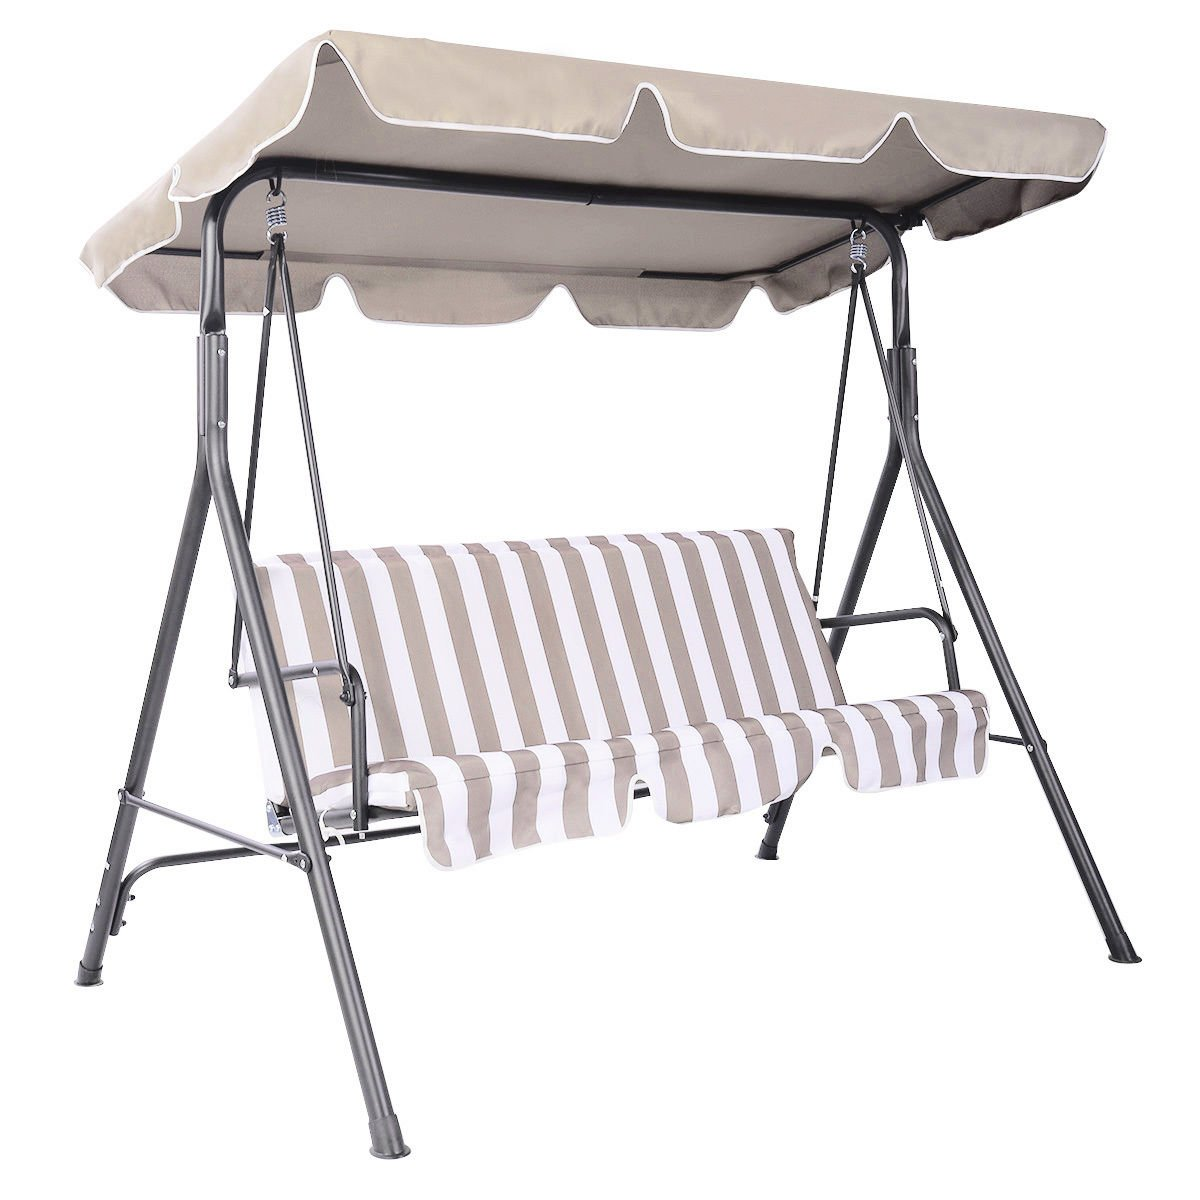 TANGKULA Swing Top Cover Canopy for Bench Replacement Outdoor Patio 66''x45'' 75''x52'' 77''x43'' (Beige, 75'' 52'')